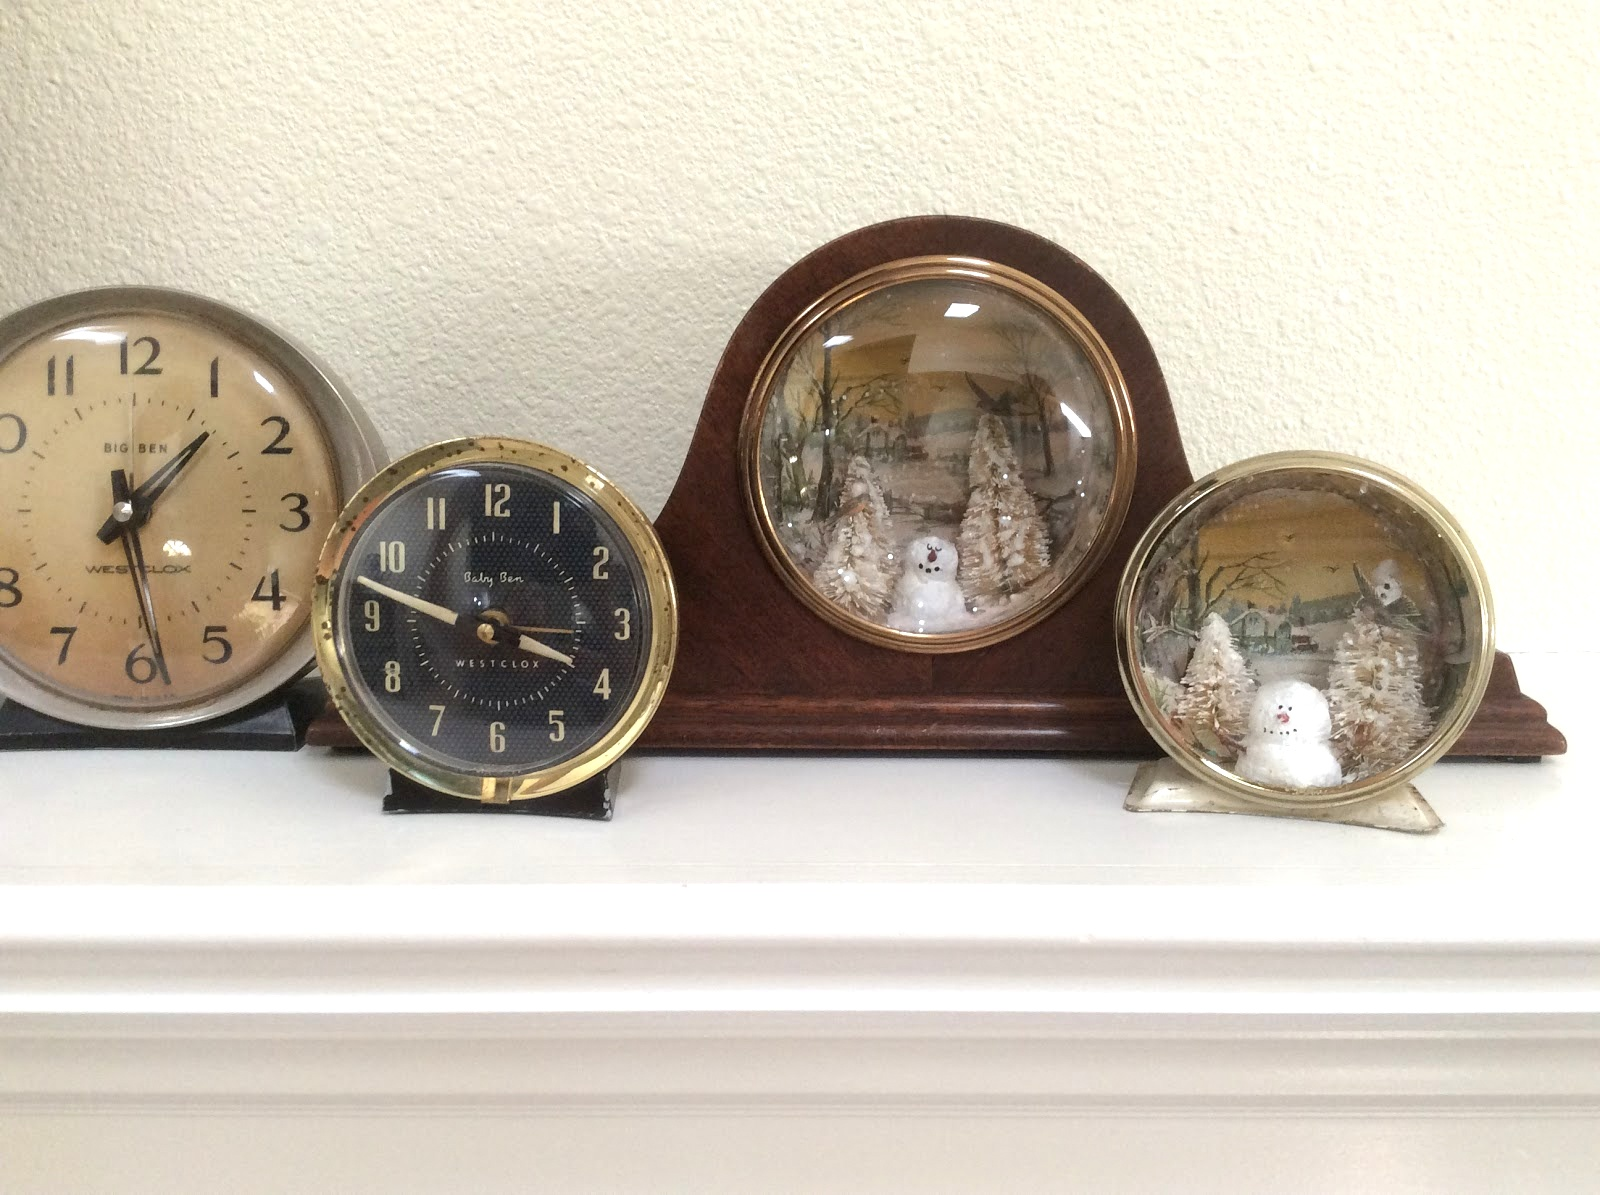 Clock snow scene globes by Fresh Vintage By Lisa S, featured on Funky Junk Interiors